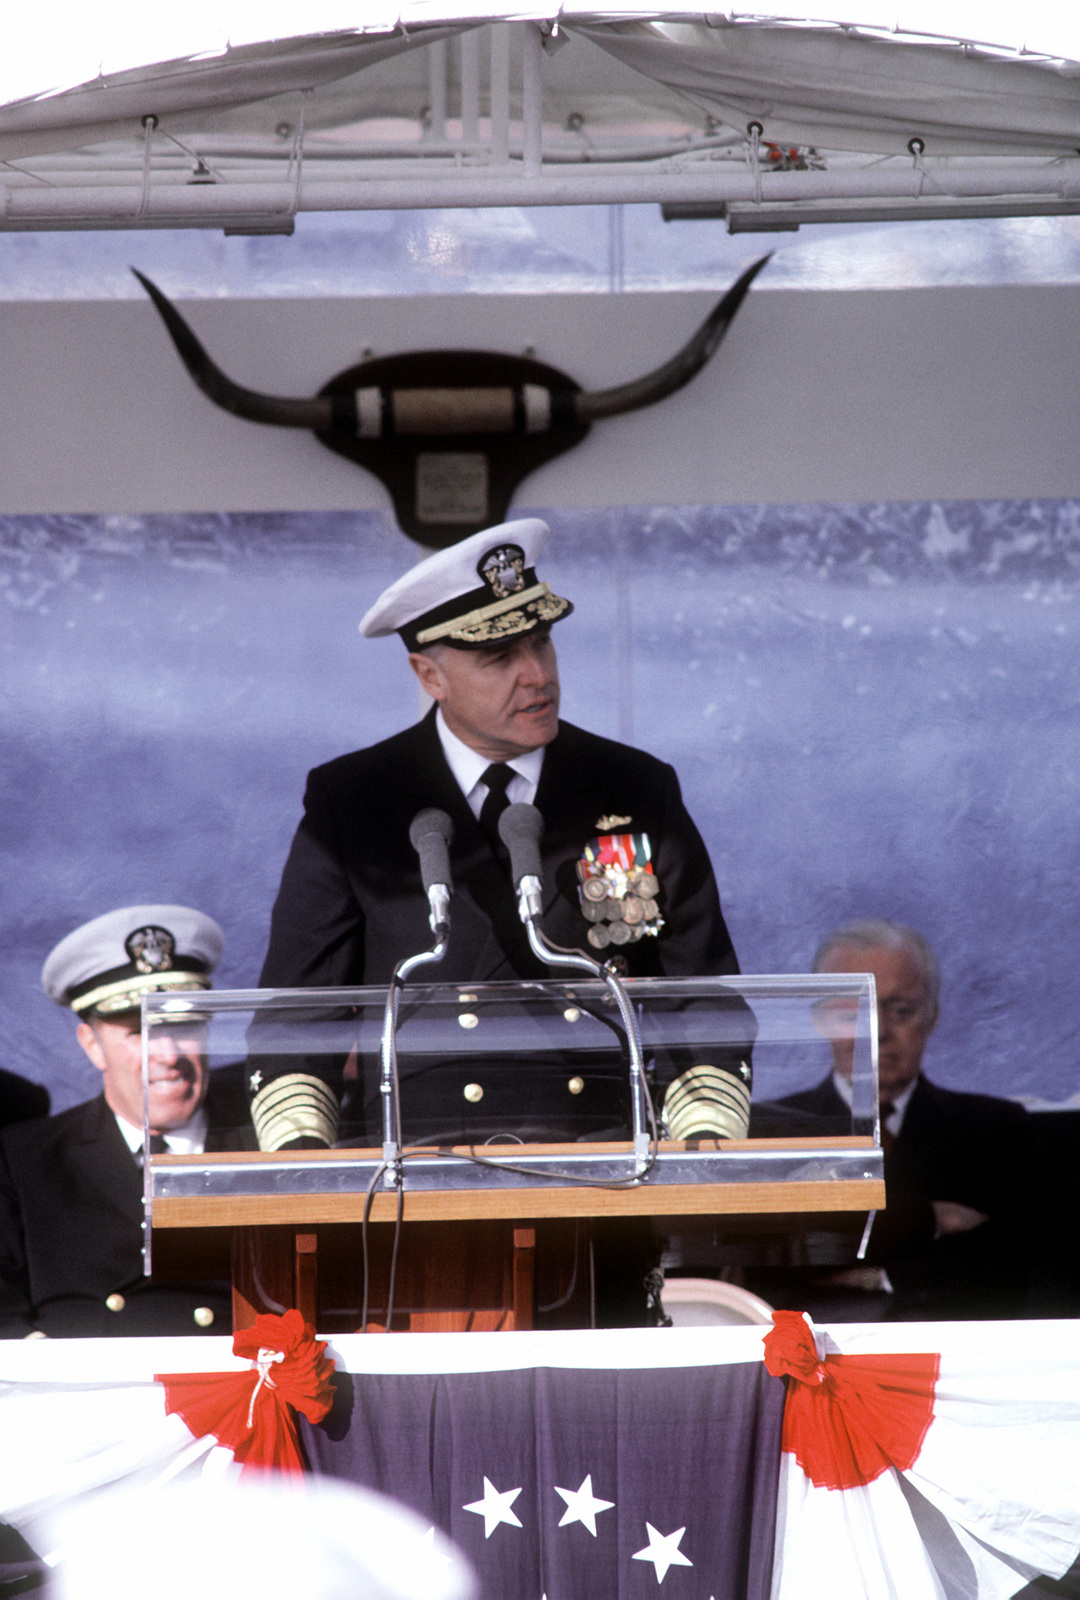 ADM James D. Watkins, chief of naval operations, speaks during the commissioning ceremonies for the nuclear-powered attack submarine USS CITY OF CORPUS CHRISTI (SSN-705). The submarine was built by the Electric Boat Division, General Dynamics Corporation